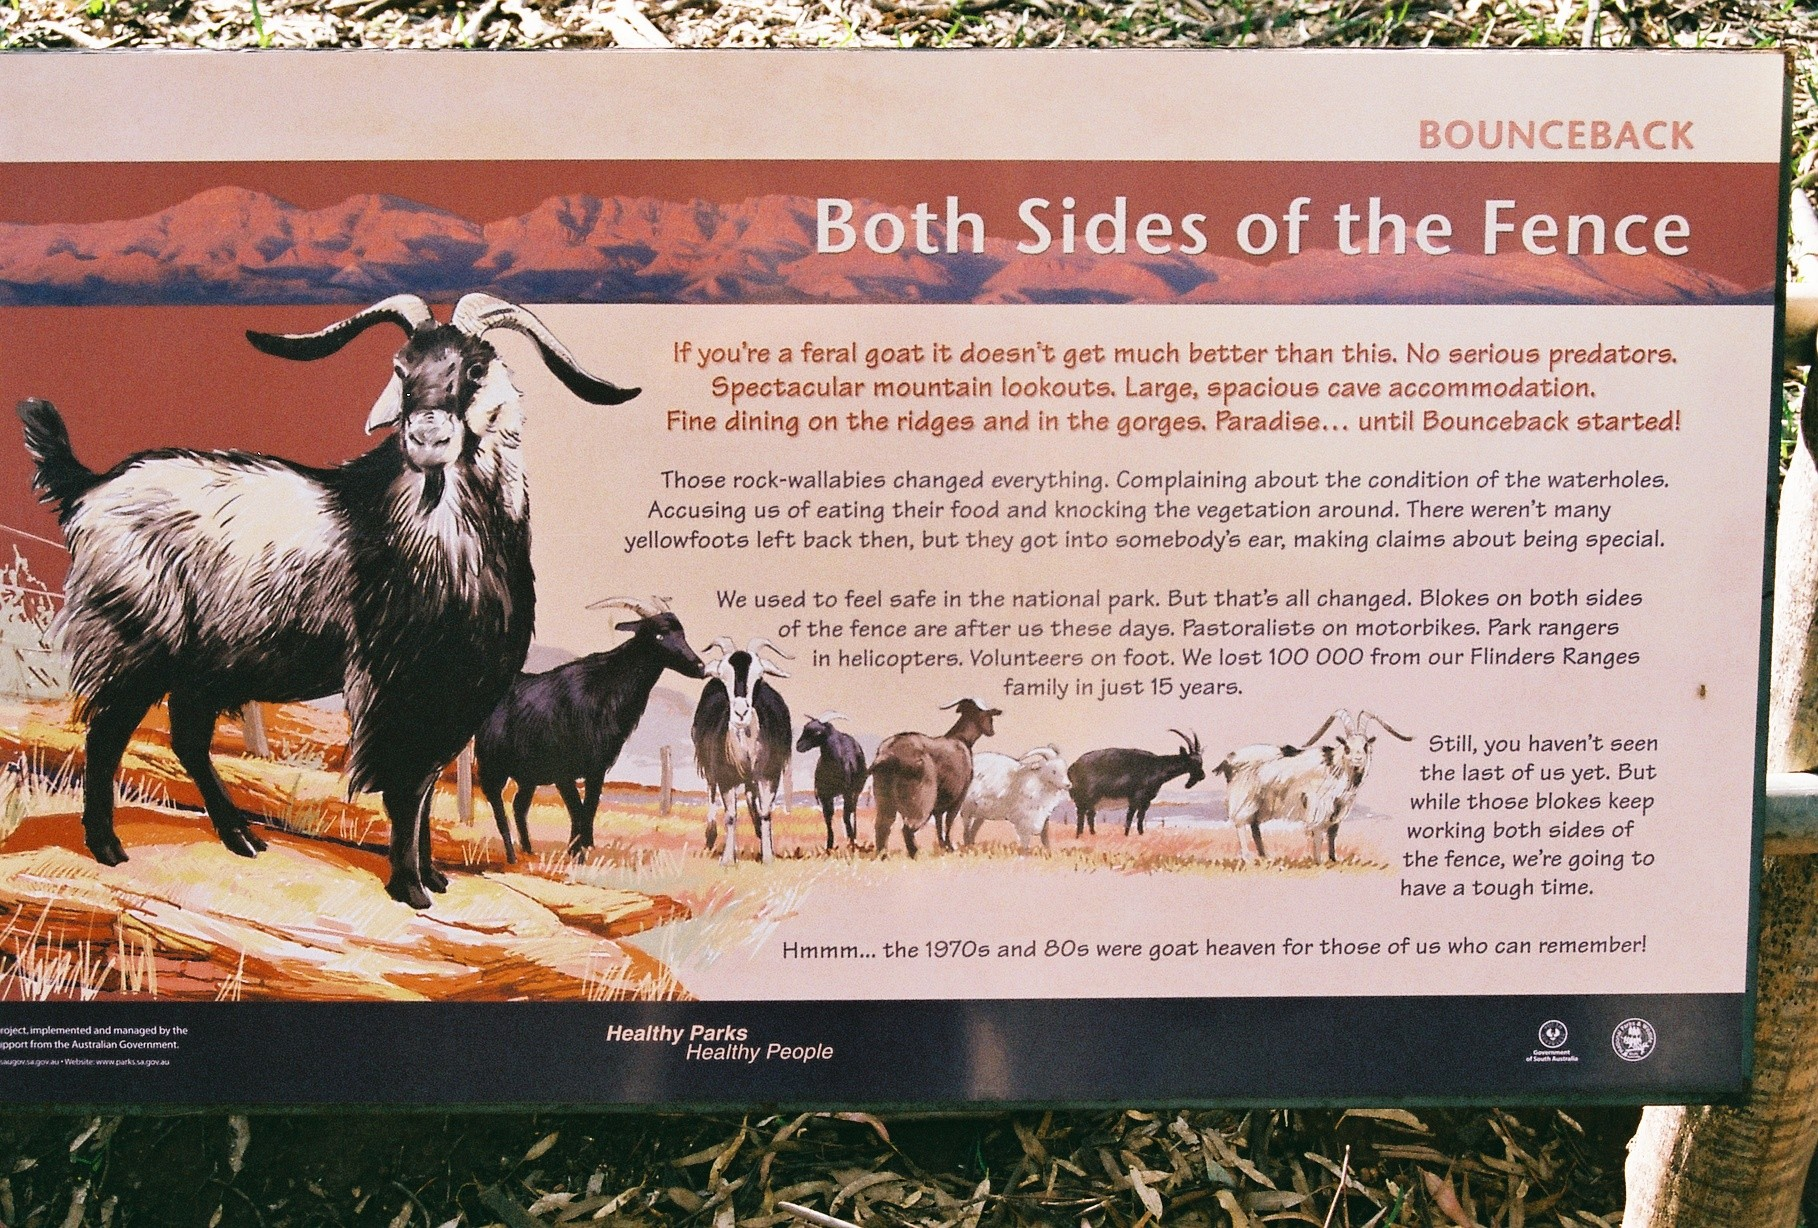 Educational material about Feral Goats